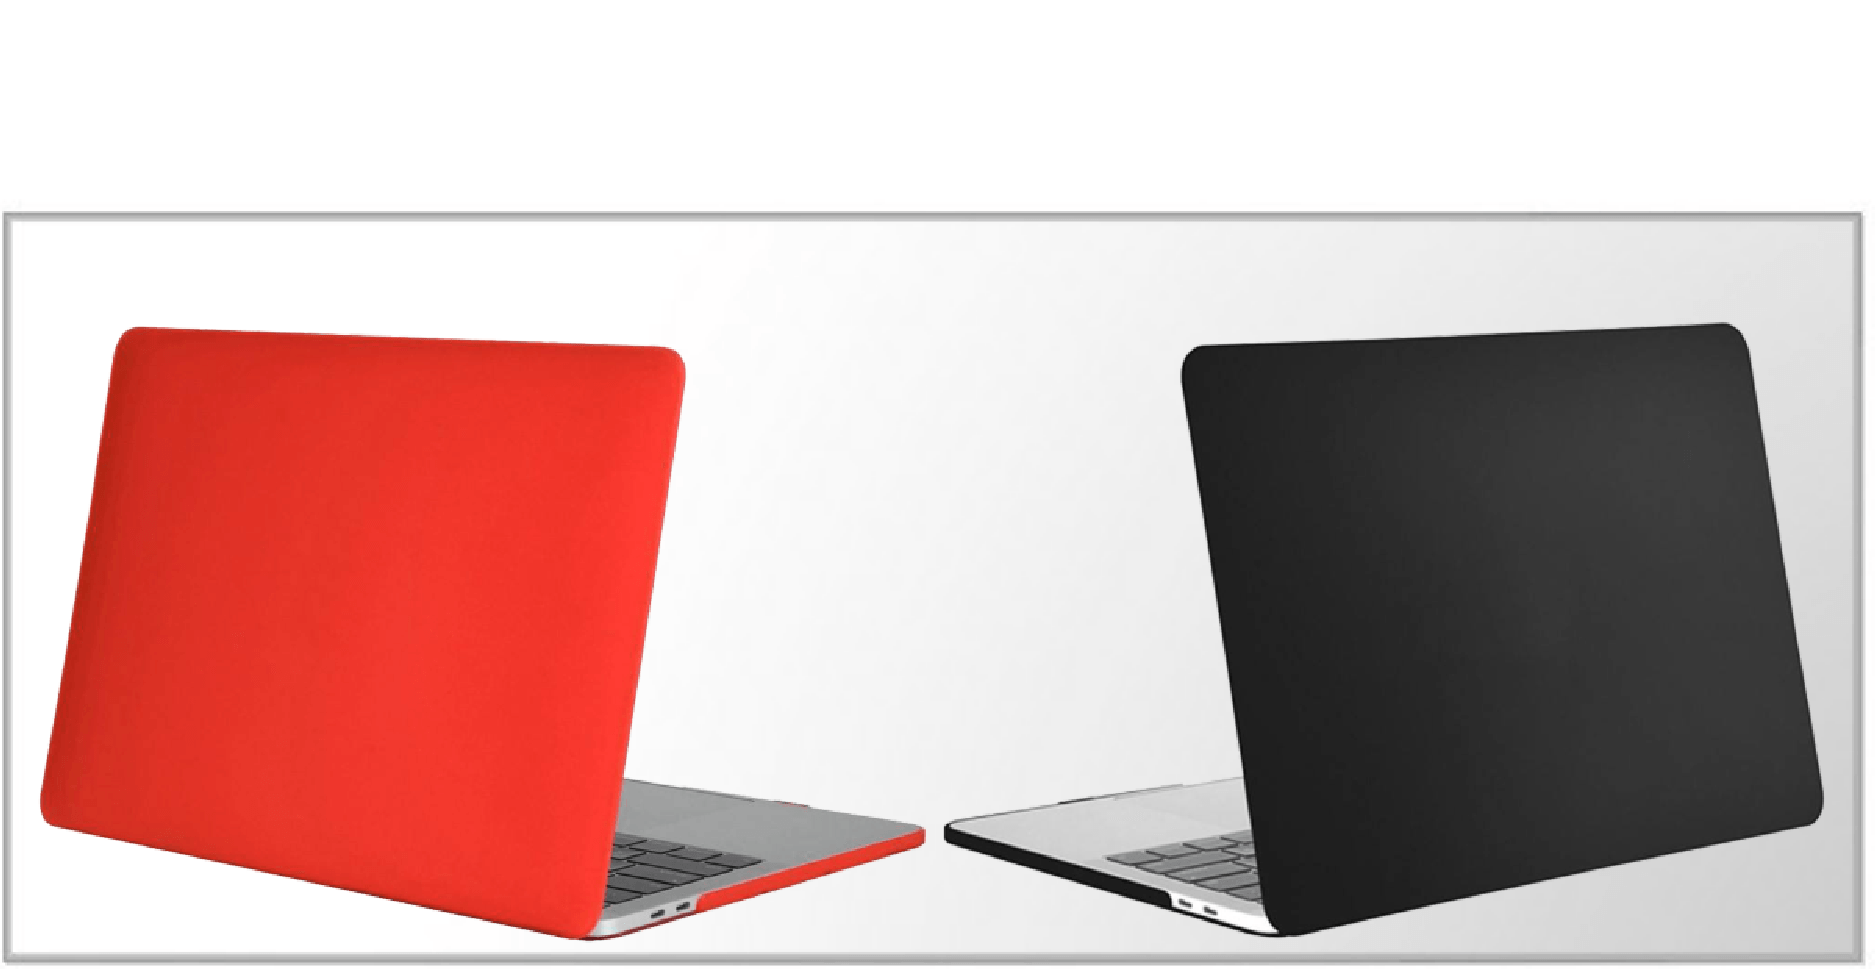 Macbook Pro Ultimo 2016/2017 Cover